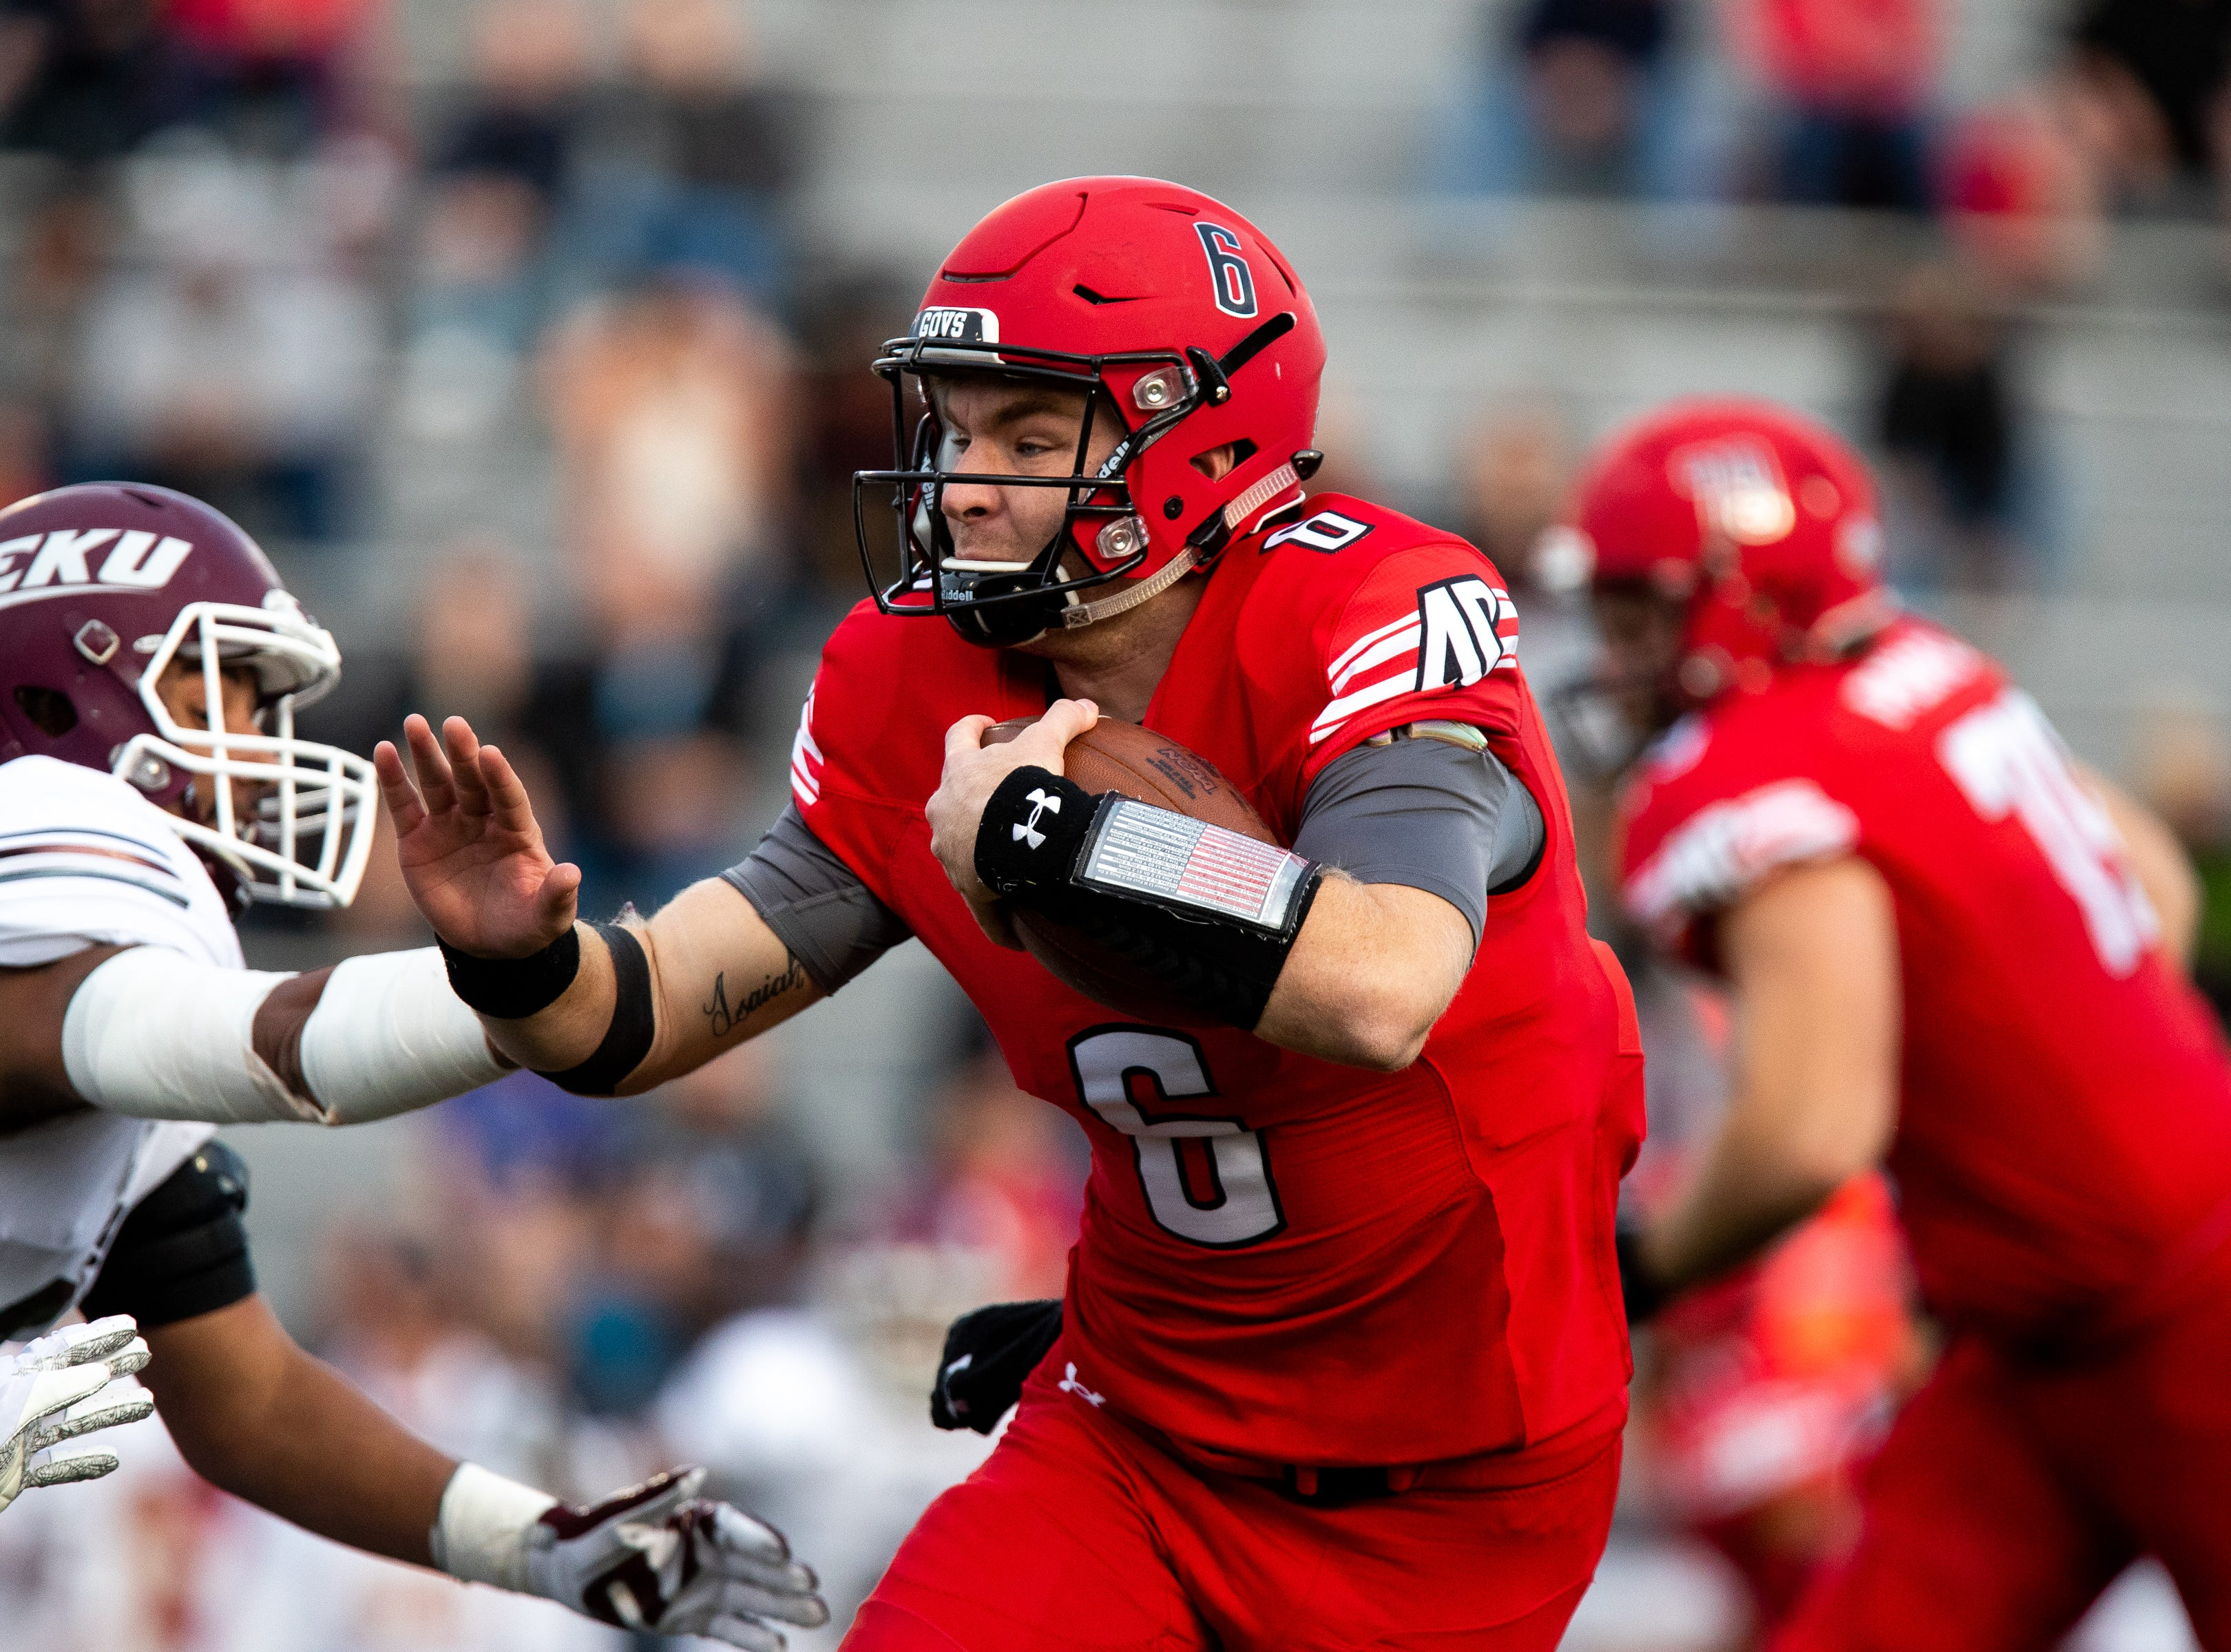 Austin Peay Governors quarterback Jeremiah Oatsvall (6) runs the ball during the first half at Fortera Stadium Saturday, Nov. 3, 2018, in Clarksville, Tenn.